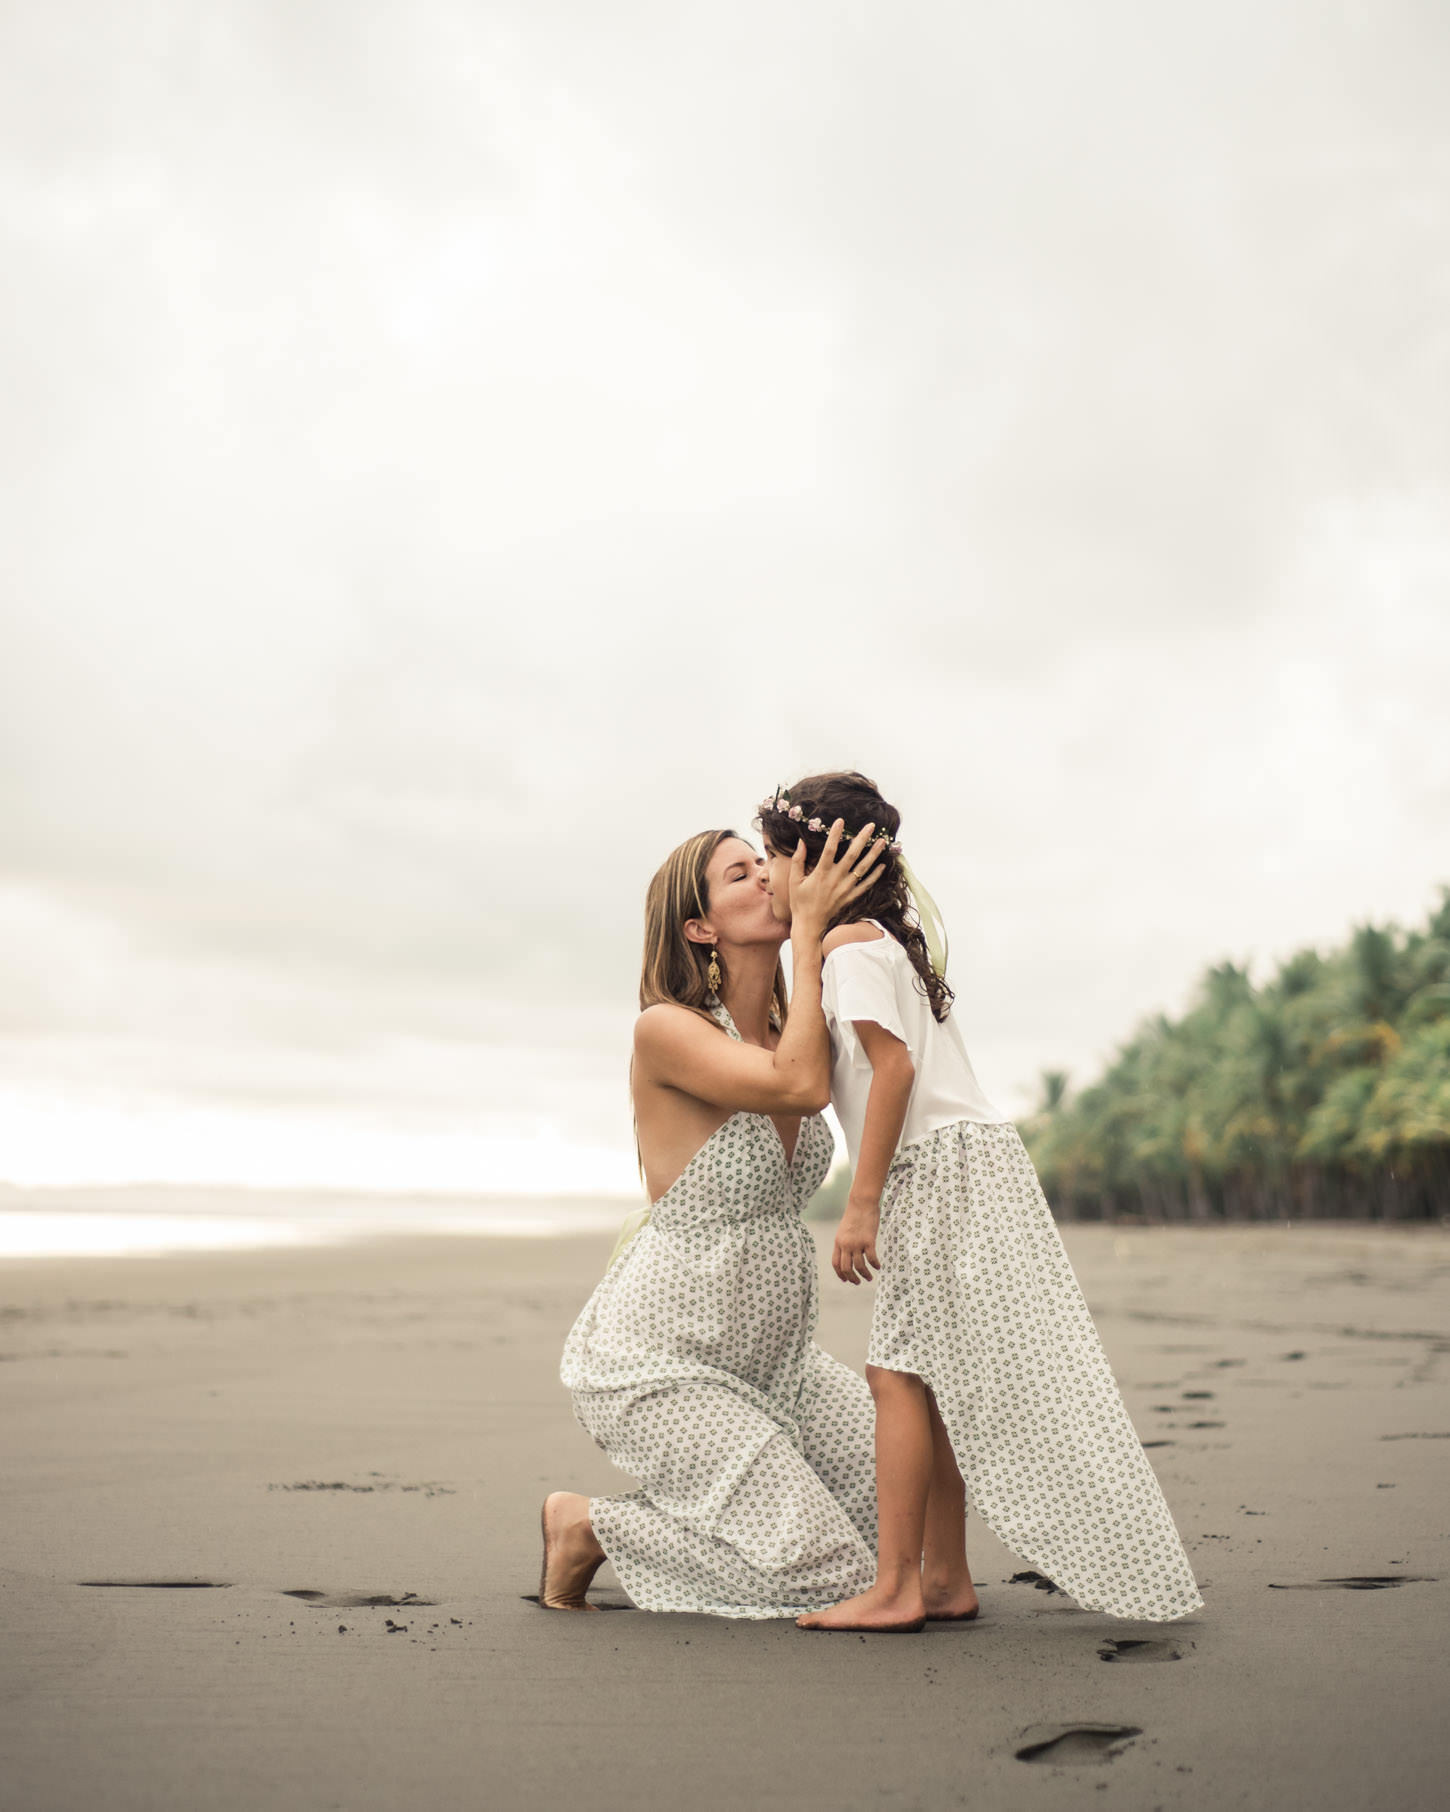 Portrait Photography by Christina Craft Manuel Antonio & Playa Linda Costa Rica